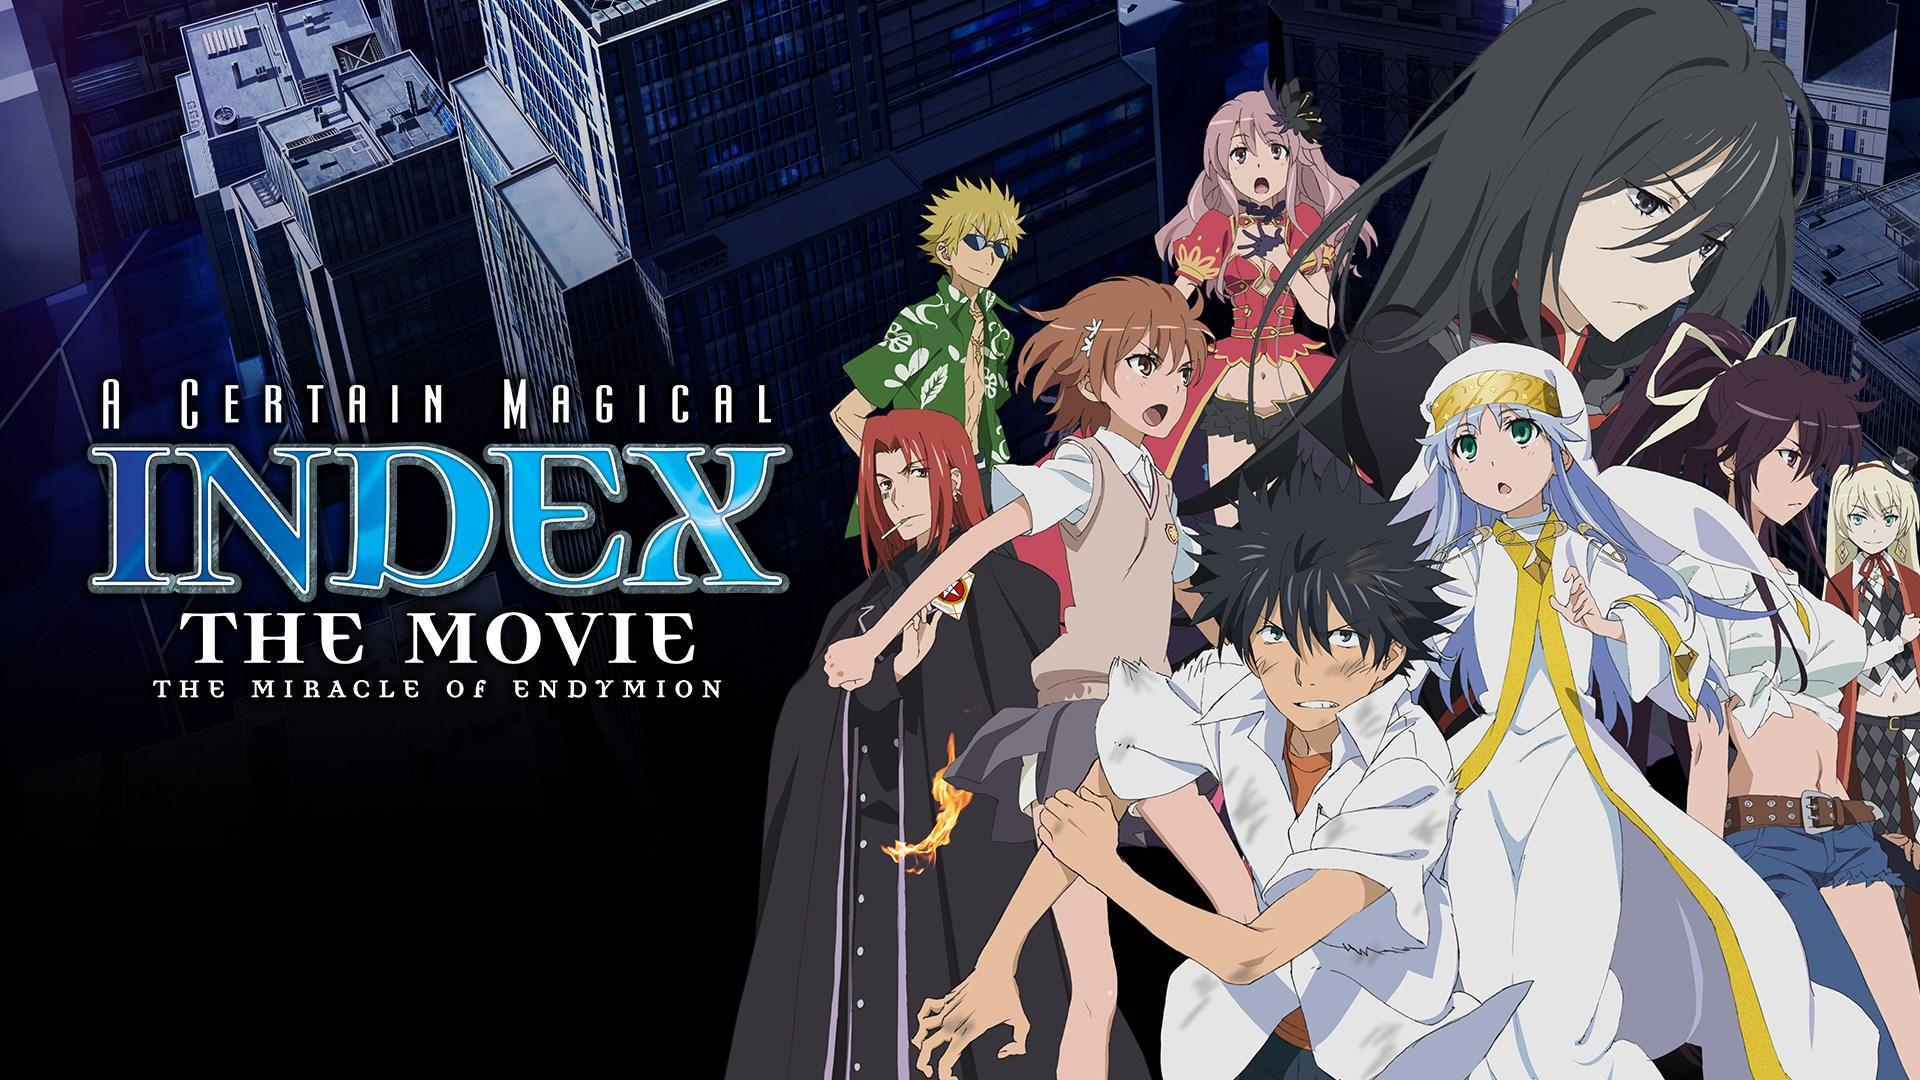 A Certain Magical Index The Movie The Miracle Of Endymion